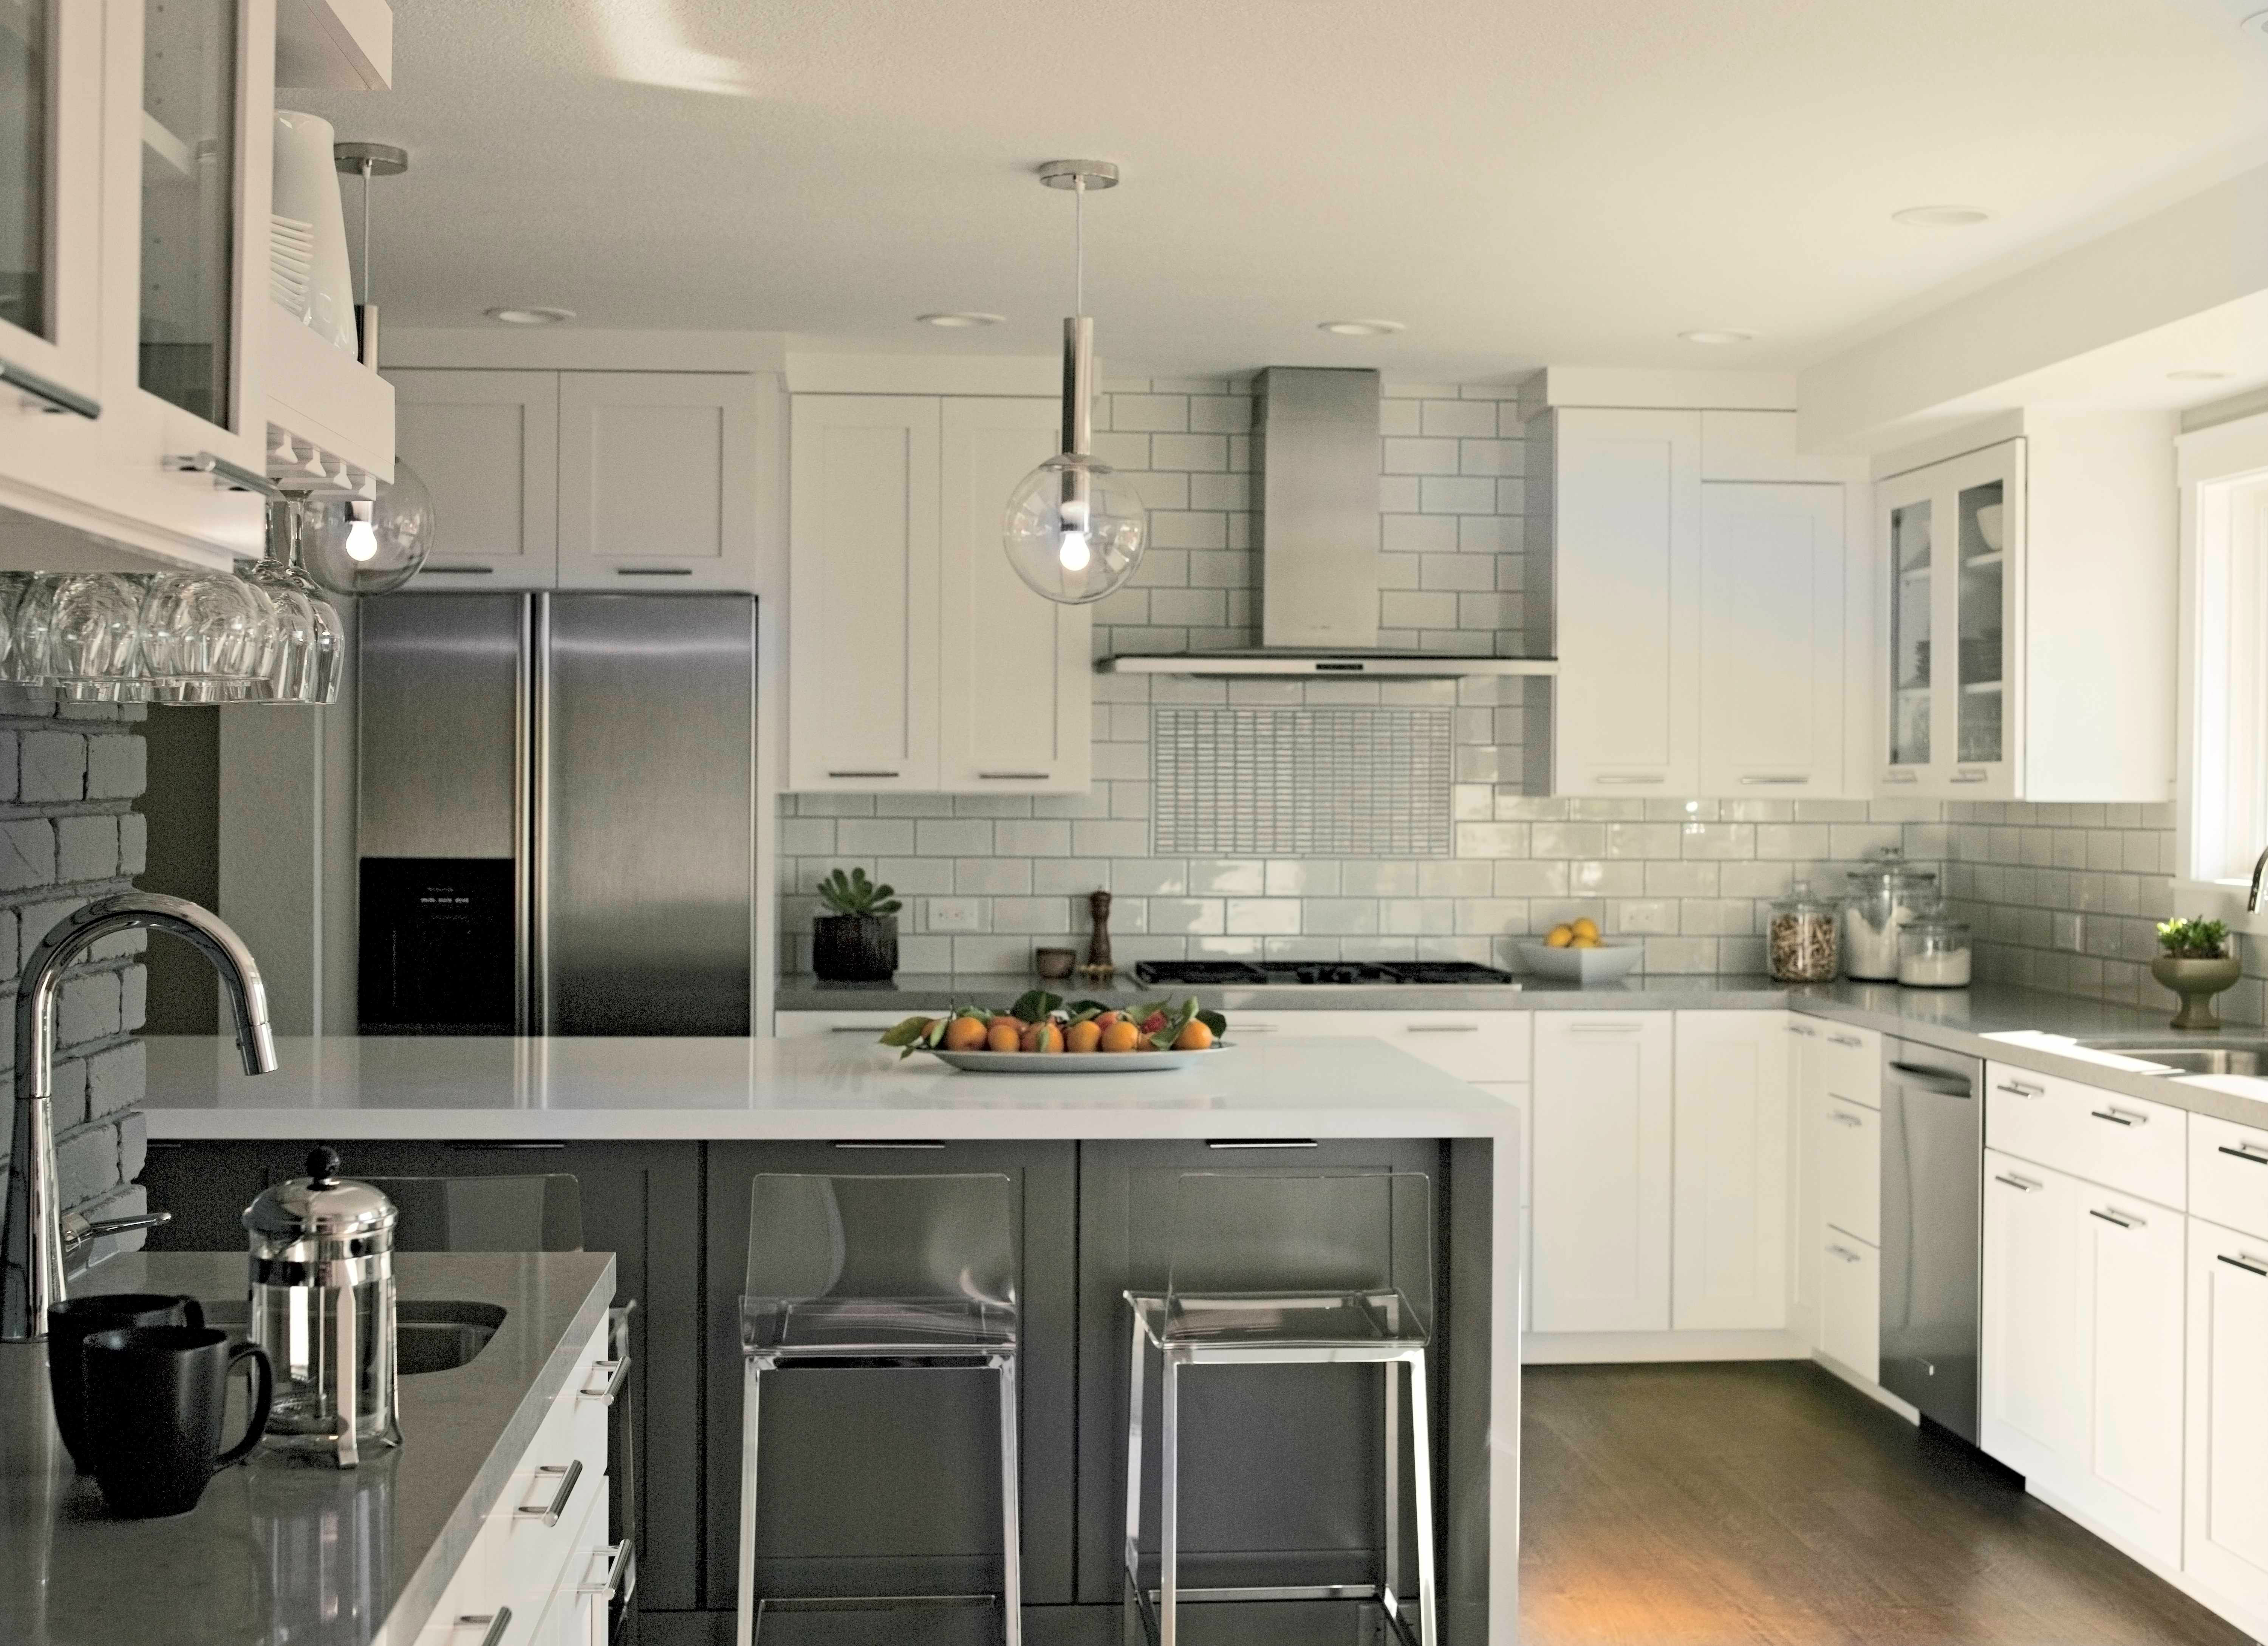 Small kitchen upgrades big design impact for Kitchen upgrade ideas